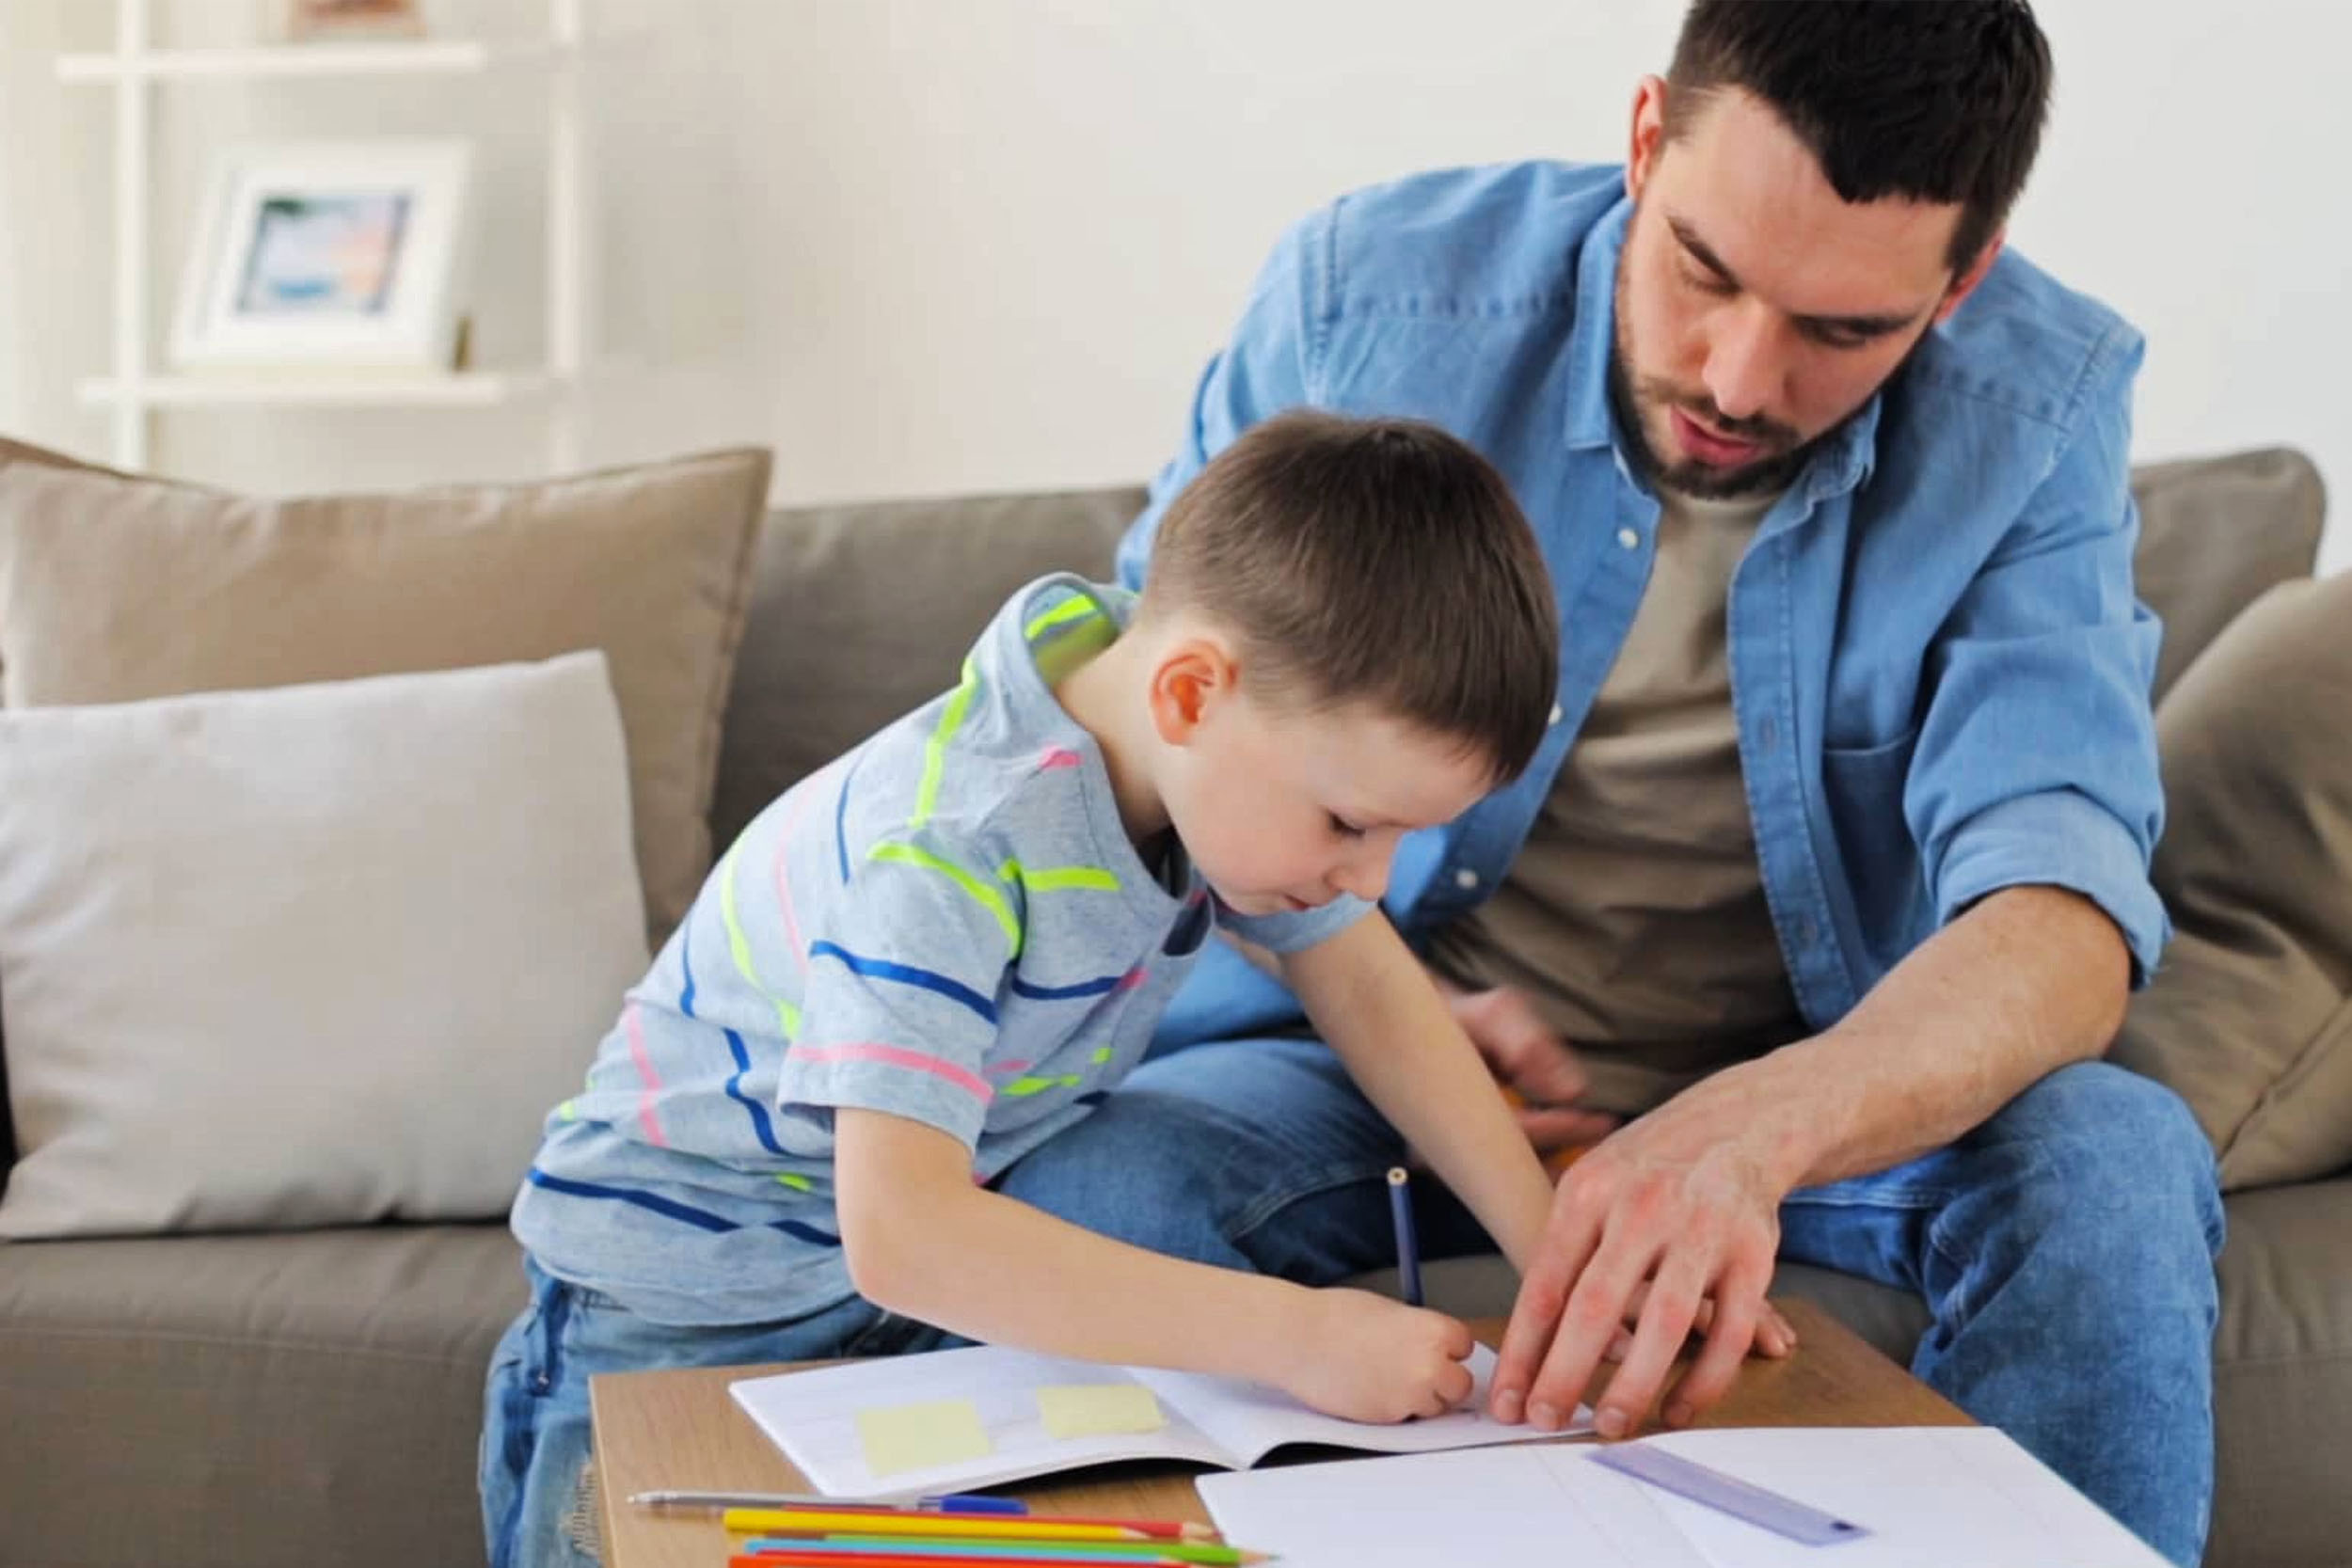 father helping son draw in living room on small table